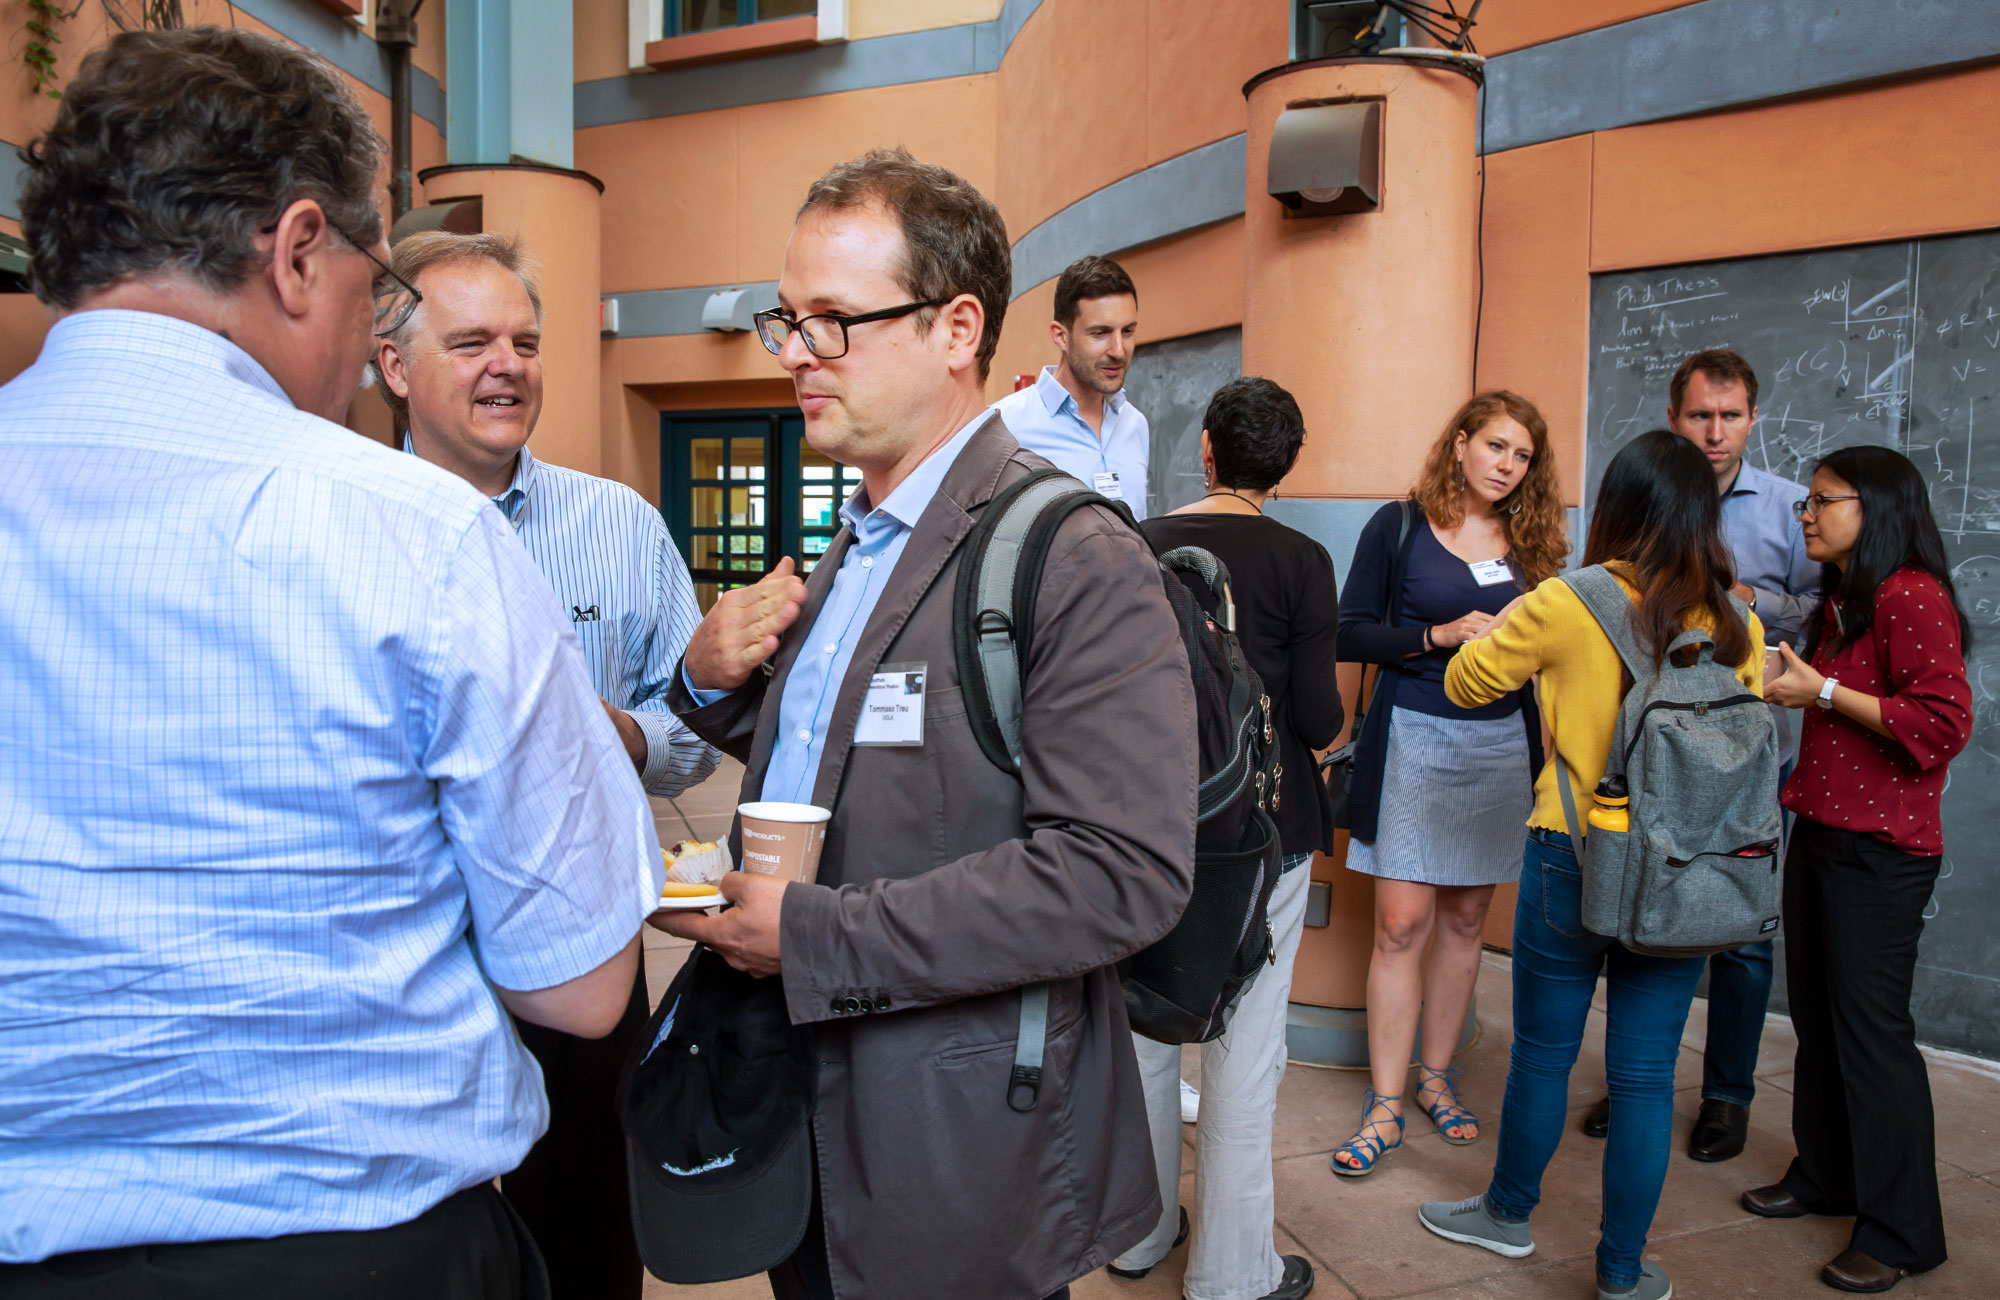 Tomasso Treu holding a cup of coffee and chatting with fellow cosmologists in a courtyard at the Kavli Institute for Theoretical Physics.